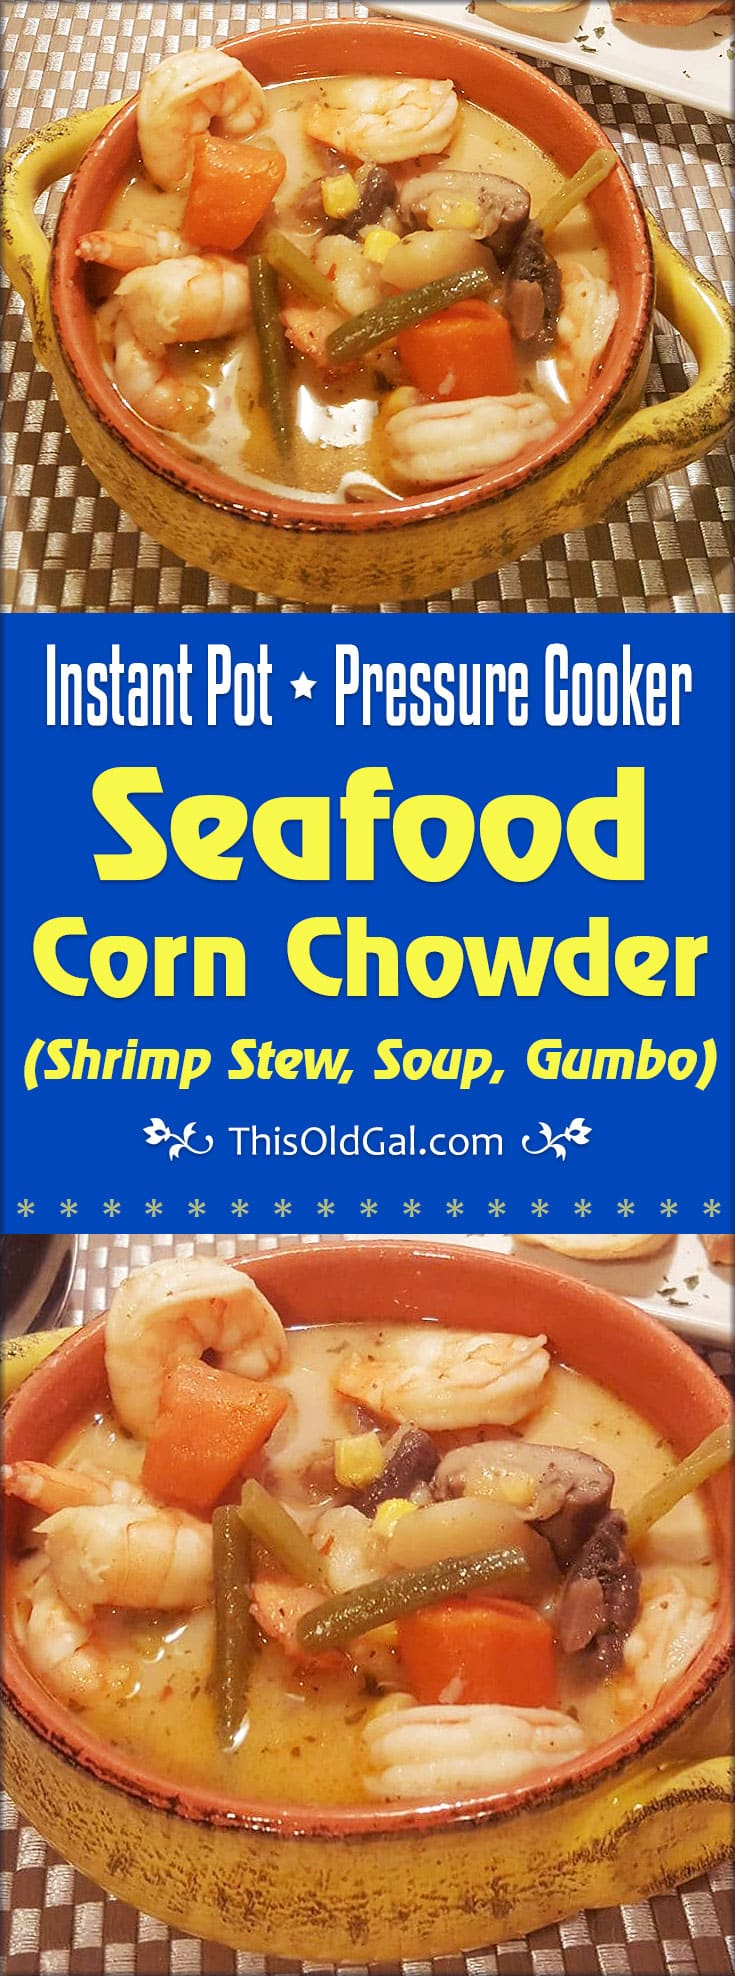 Pressure Cooker Seafood Corn Chowder (Shrimp Stew, Soup, Gumbo)